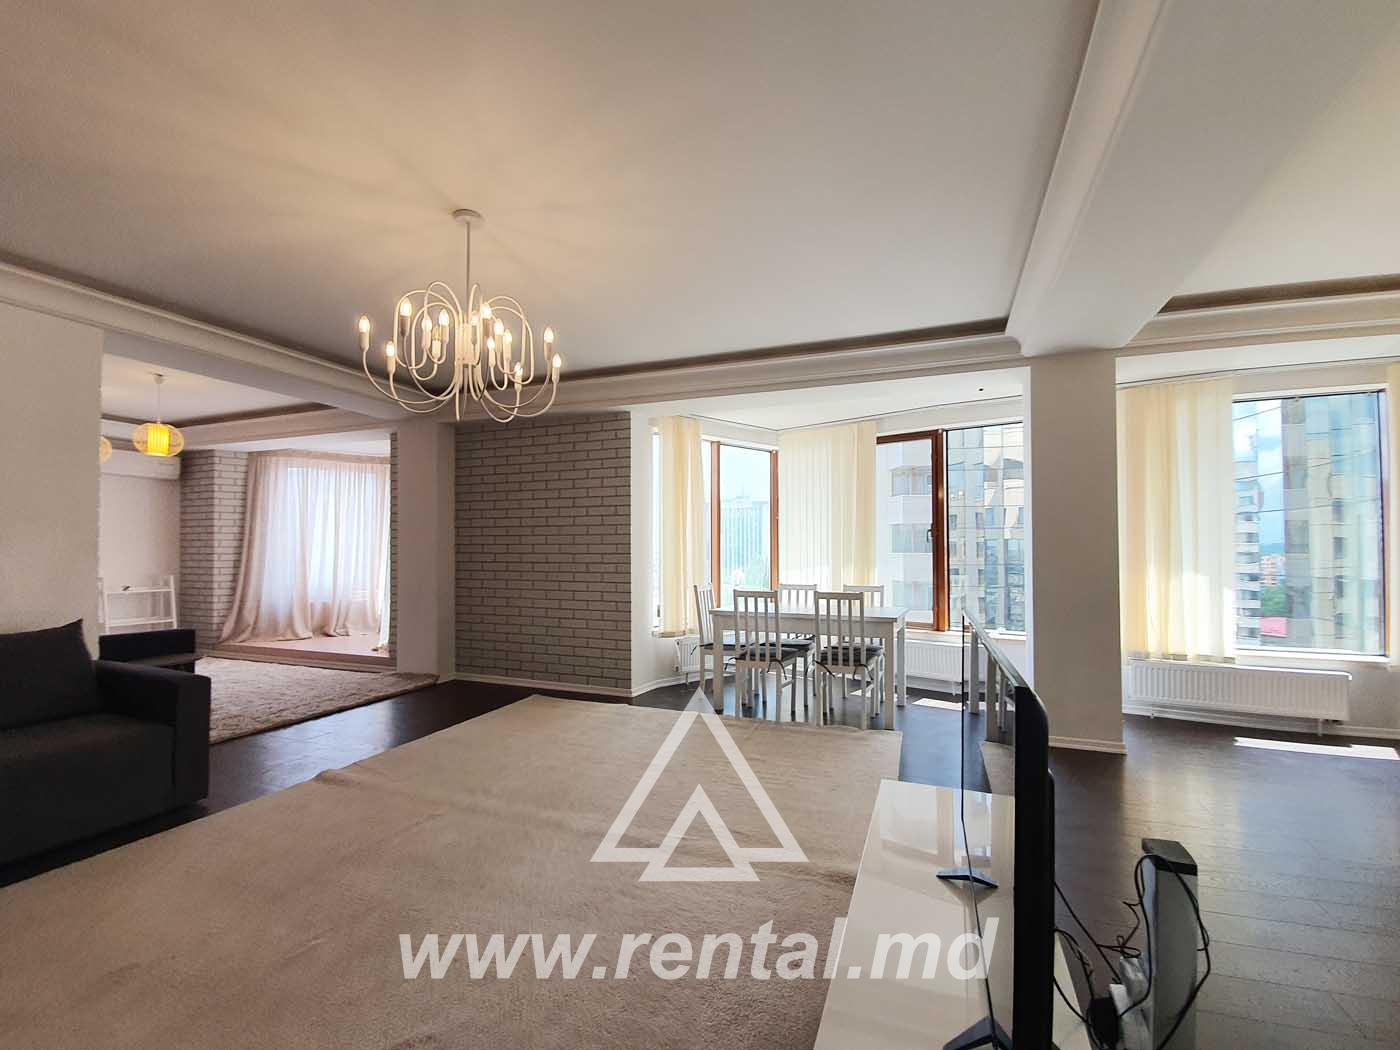 VIP Apartment for rent on Stefan cel Mare Boulevard